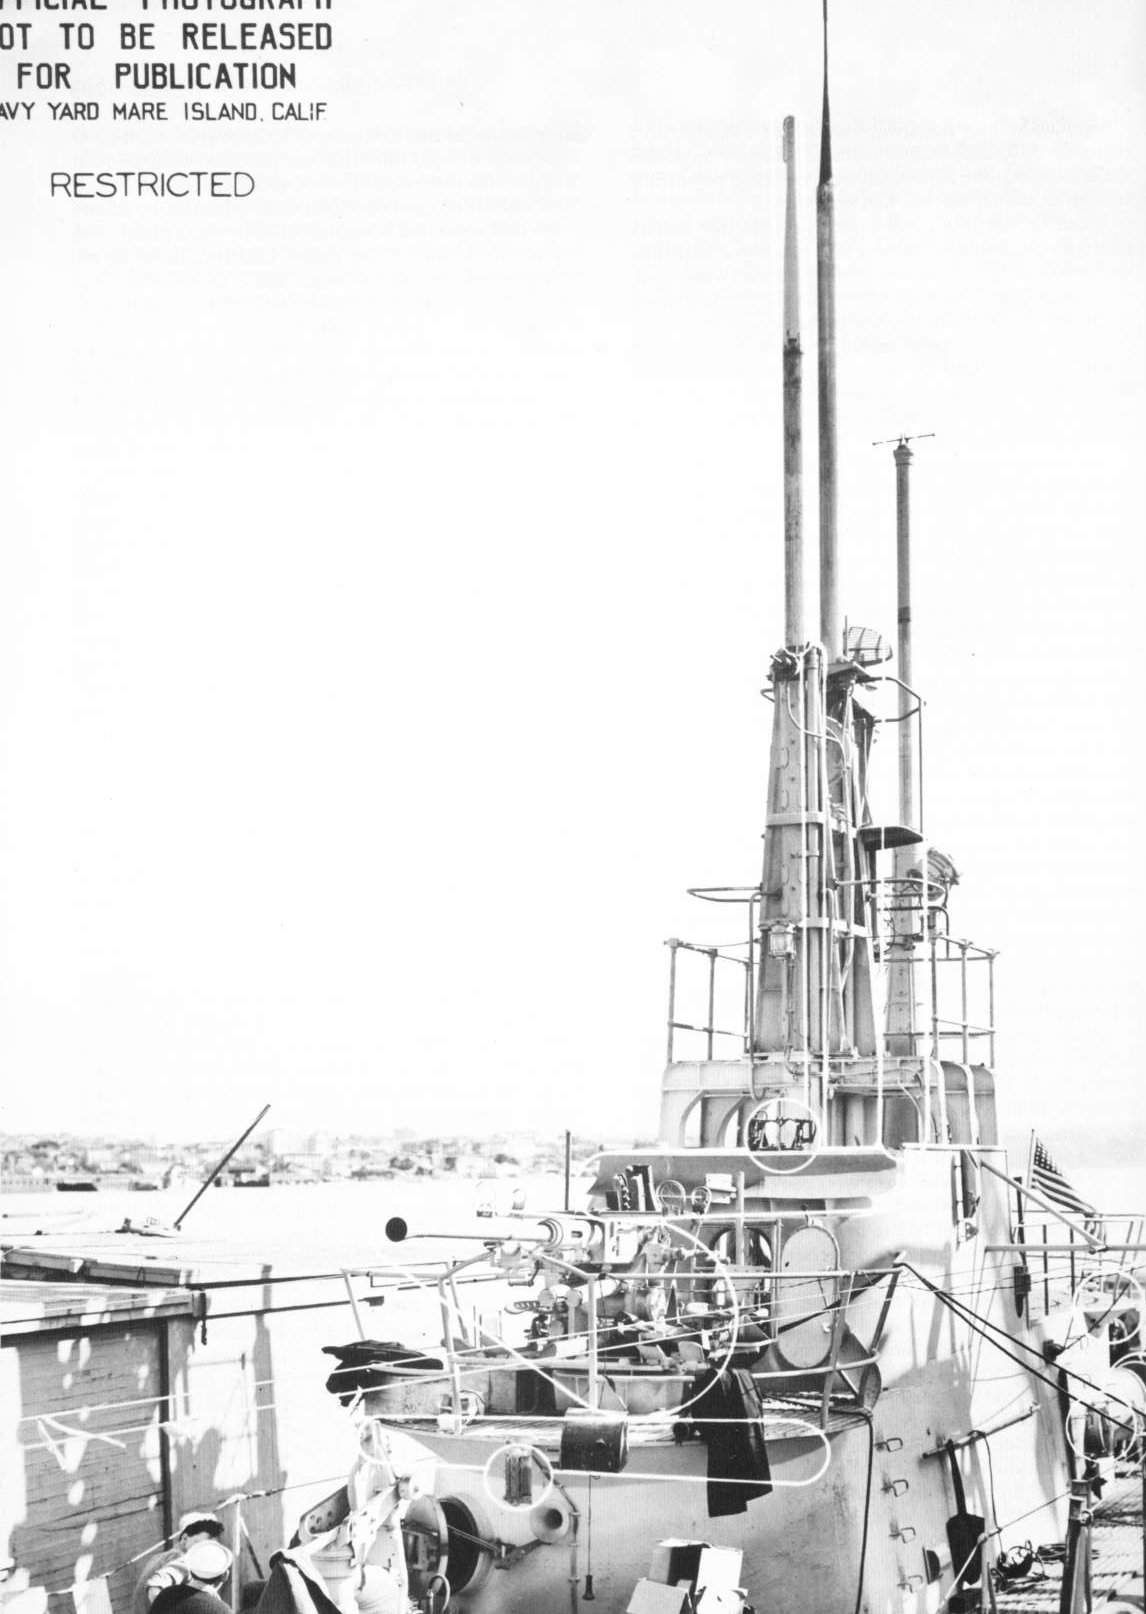 Photo Superstructure Of Uss Cod During Overhaul Mare